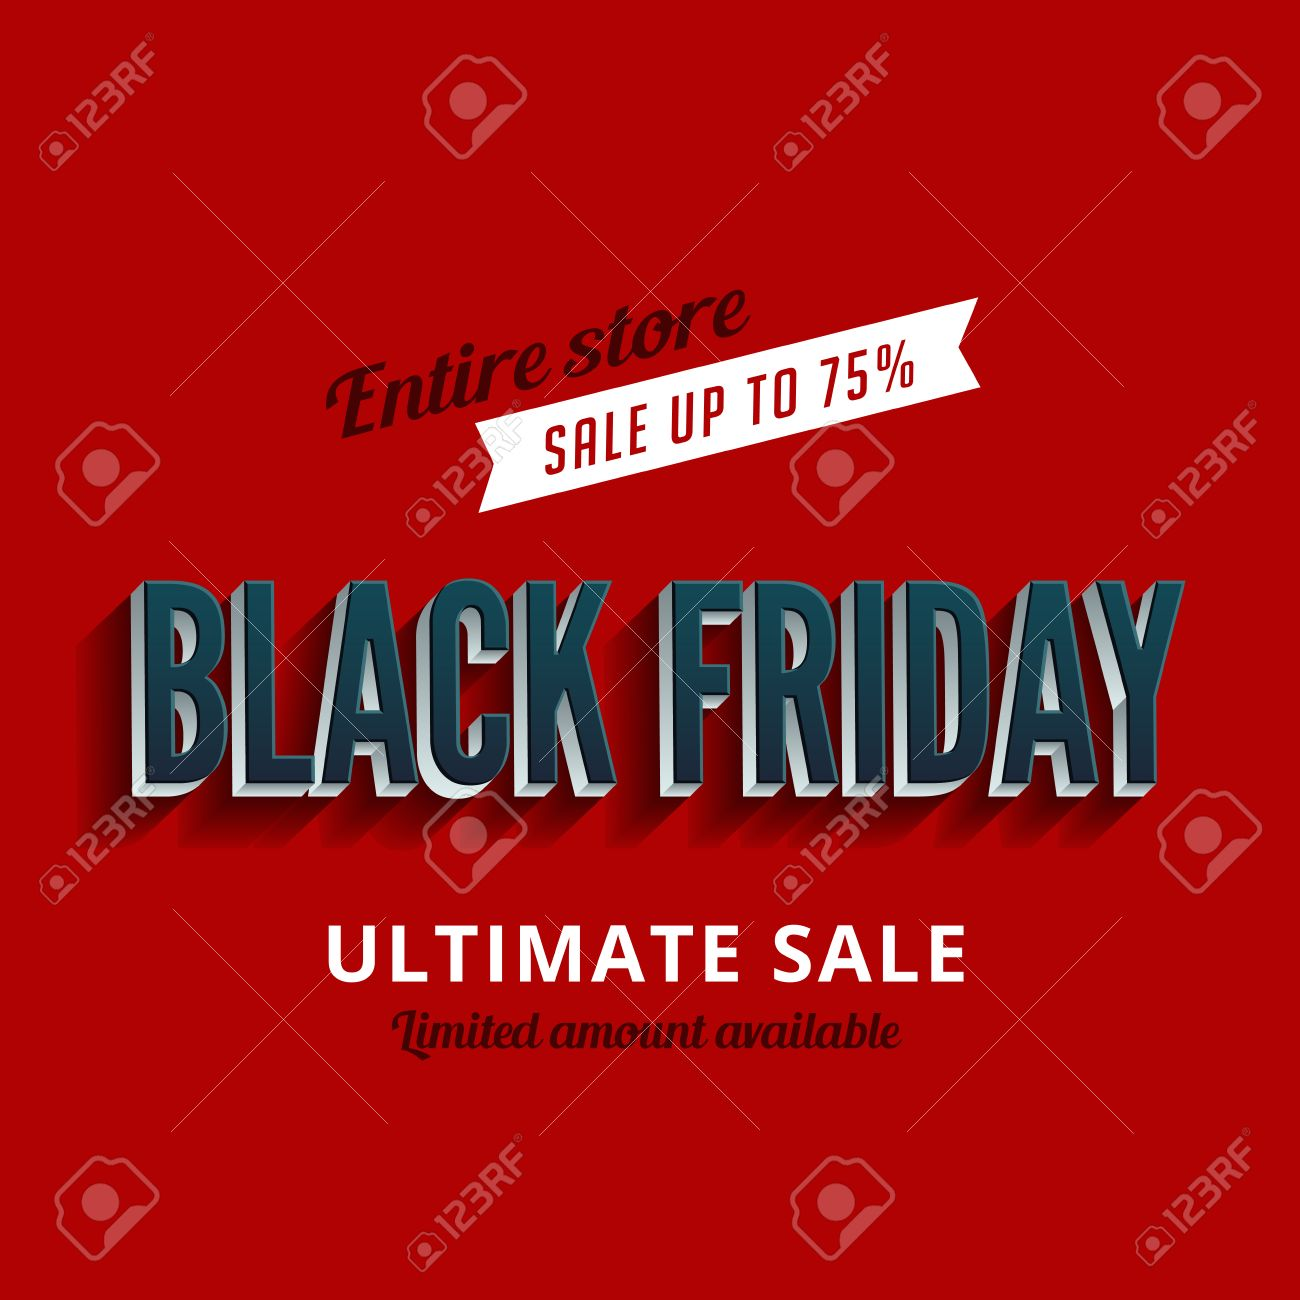 Poster design 3d - Black Friday Sale Poster Design 3d Typography Template Retro Style Stock Vector 33015332